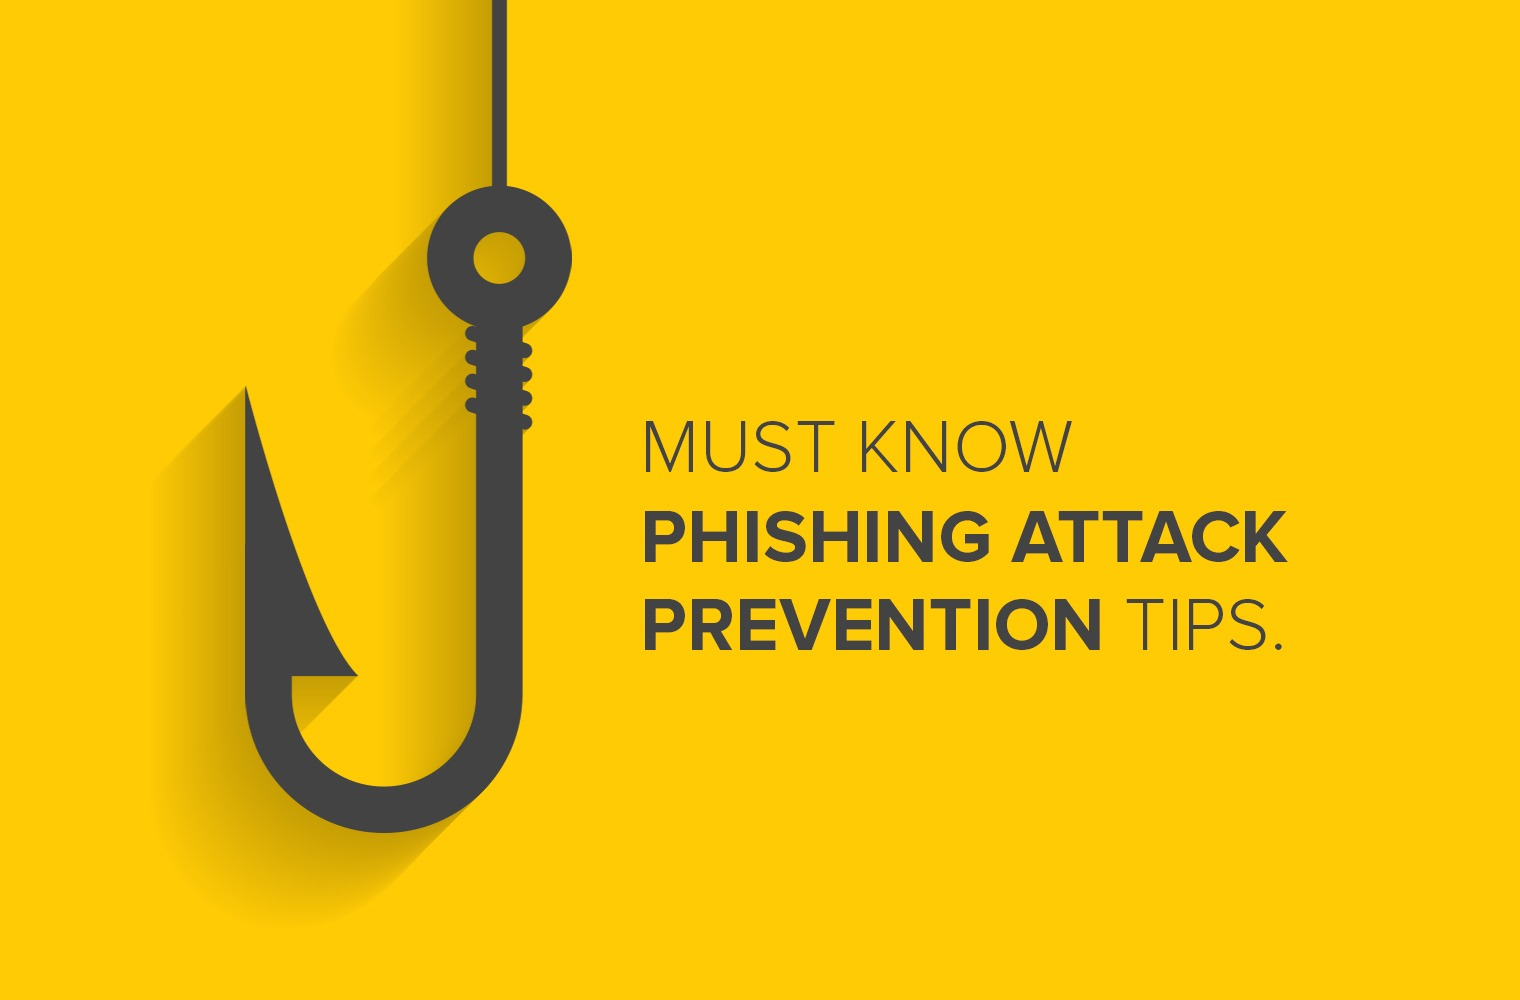 Must Know Phishing Attack Prevention Tips